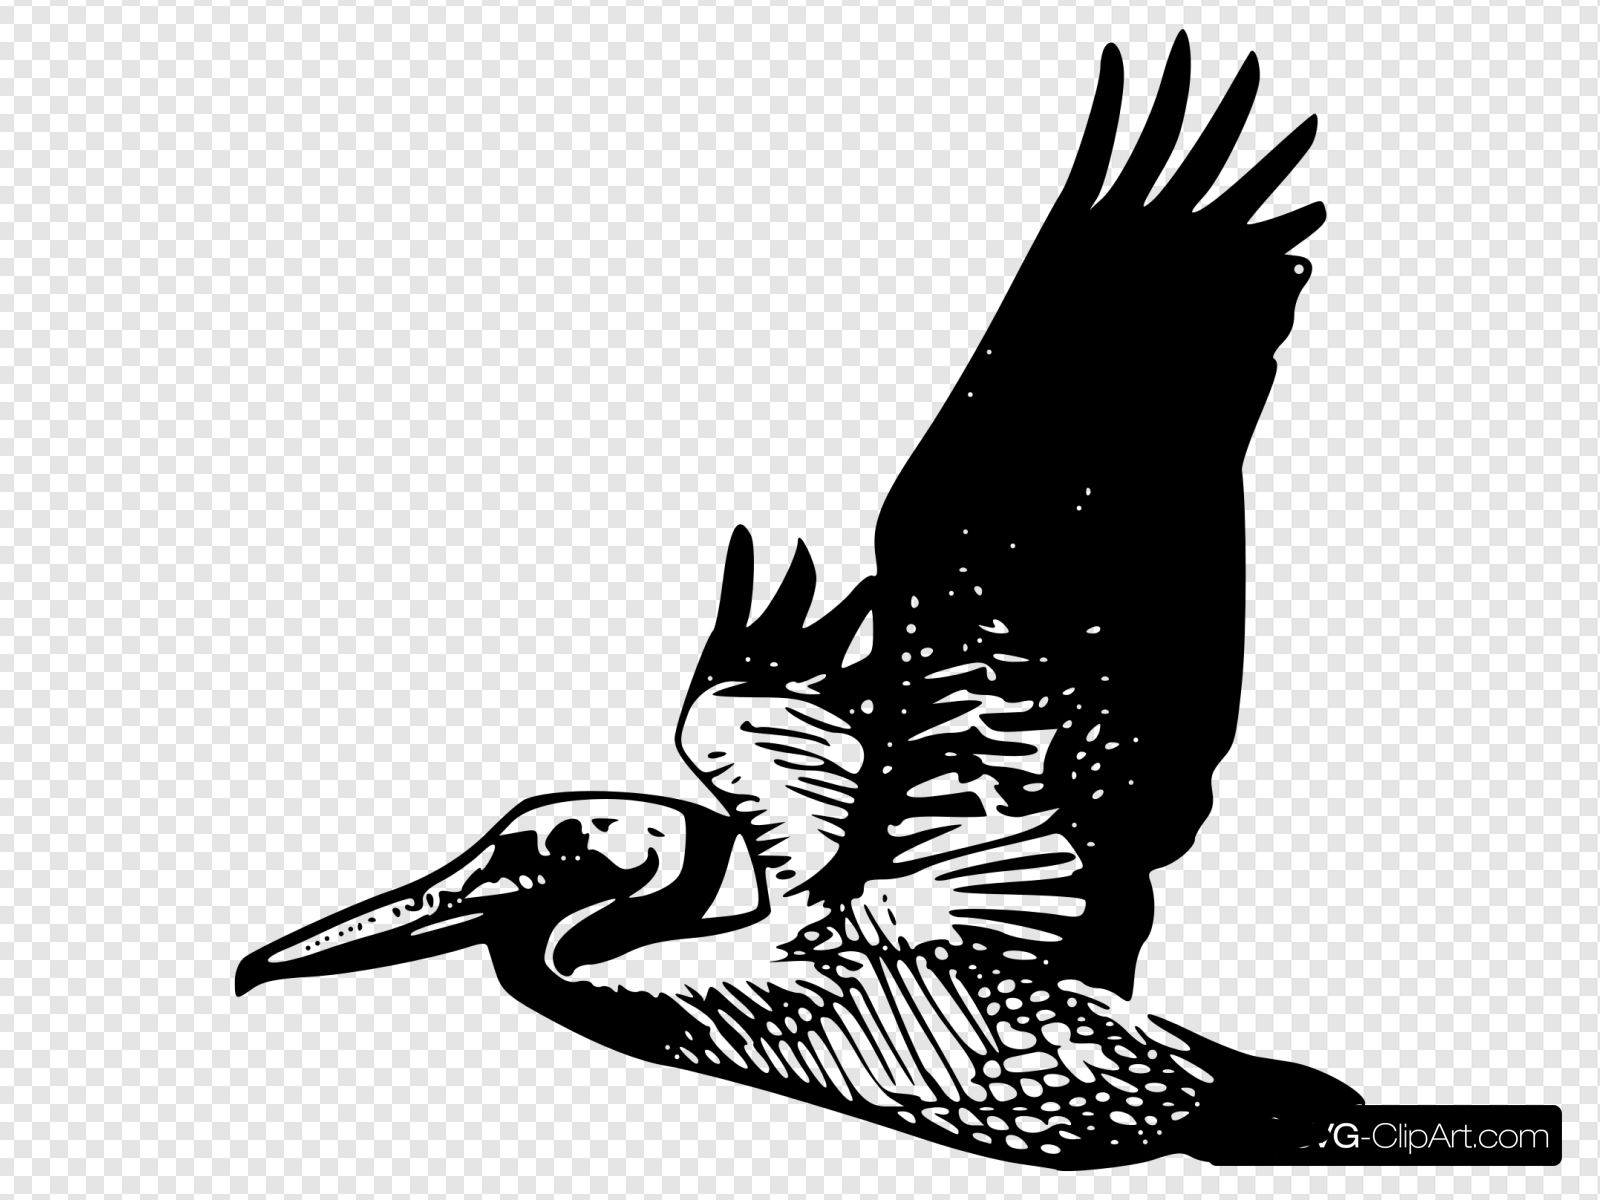 Pelican clipart icon. Flying clip art and